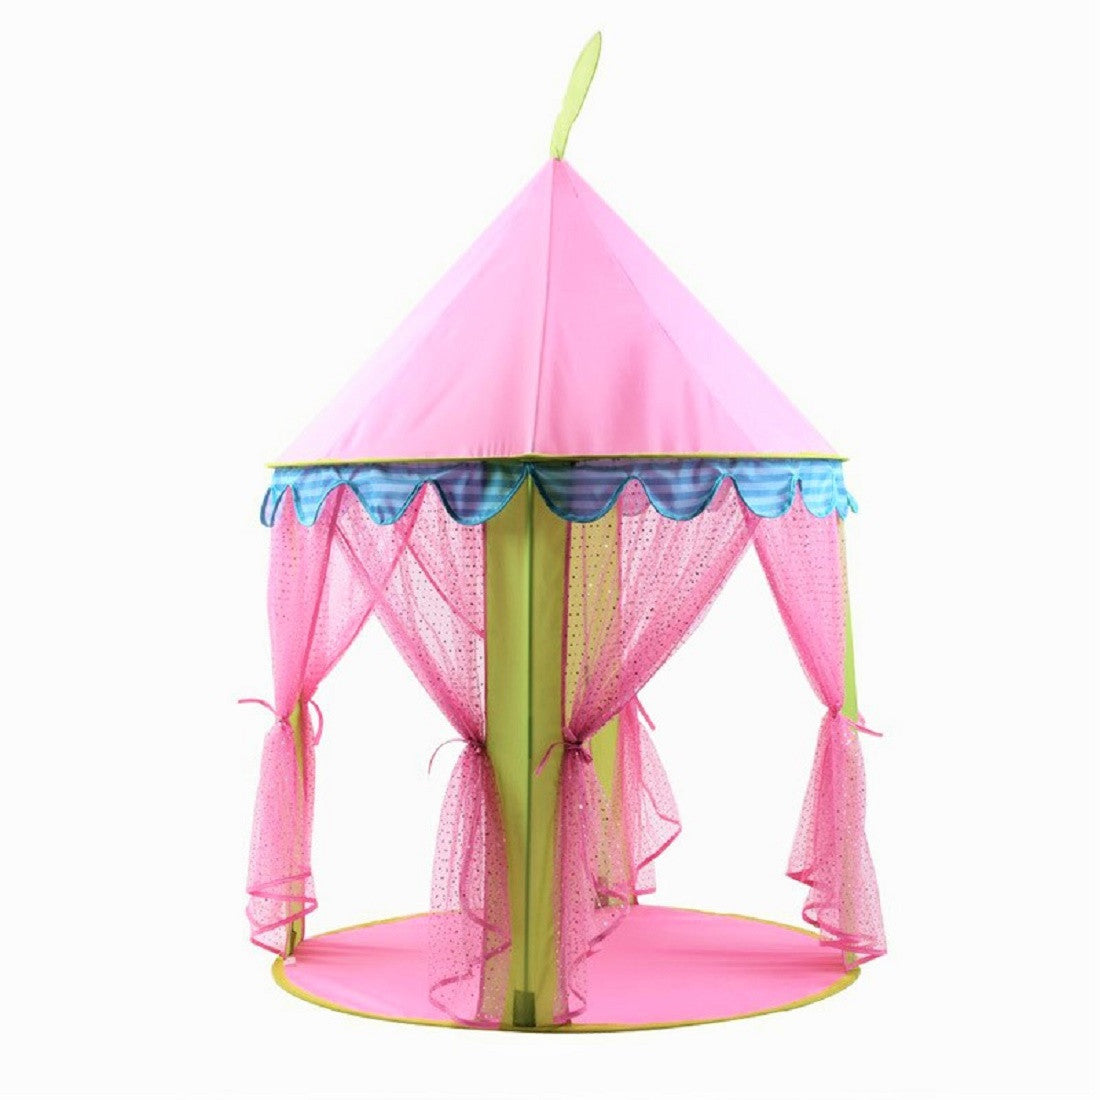 Dalosdream Super Cute Pop-up Tent Princess Play Tent for Girls  sc 1 st  Dalosdream : princess pop up tent - memphite.com